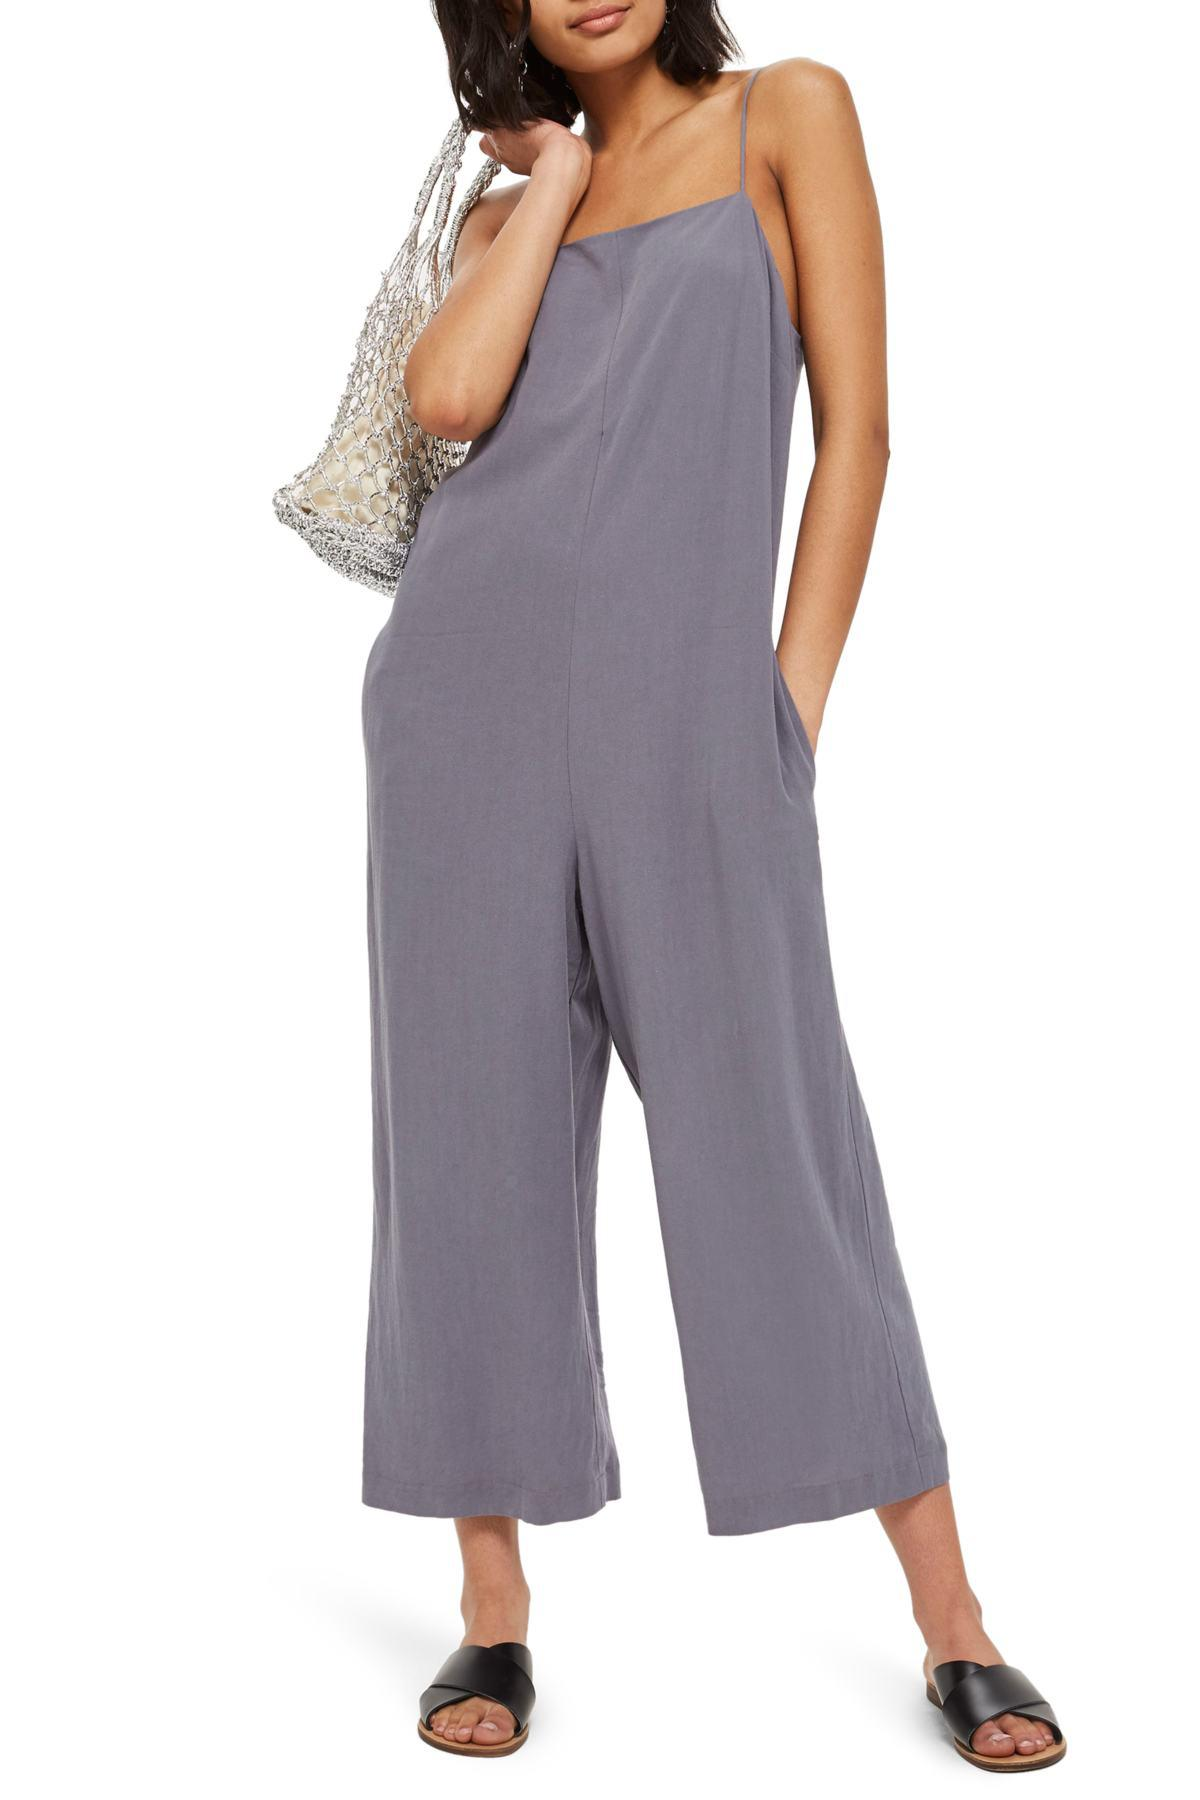 71ac55f03ce9 Lyst - TOPSHOP Molly Square Neck Slouch Jumpsuit in Blue